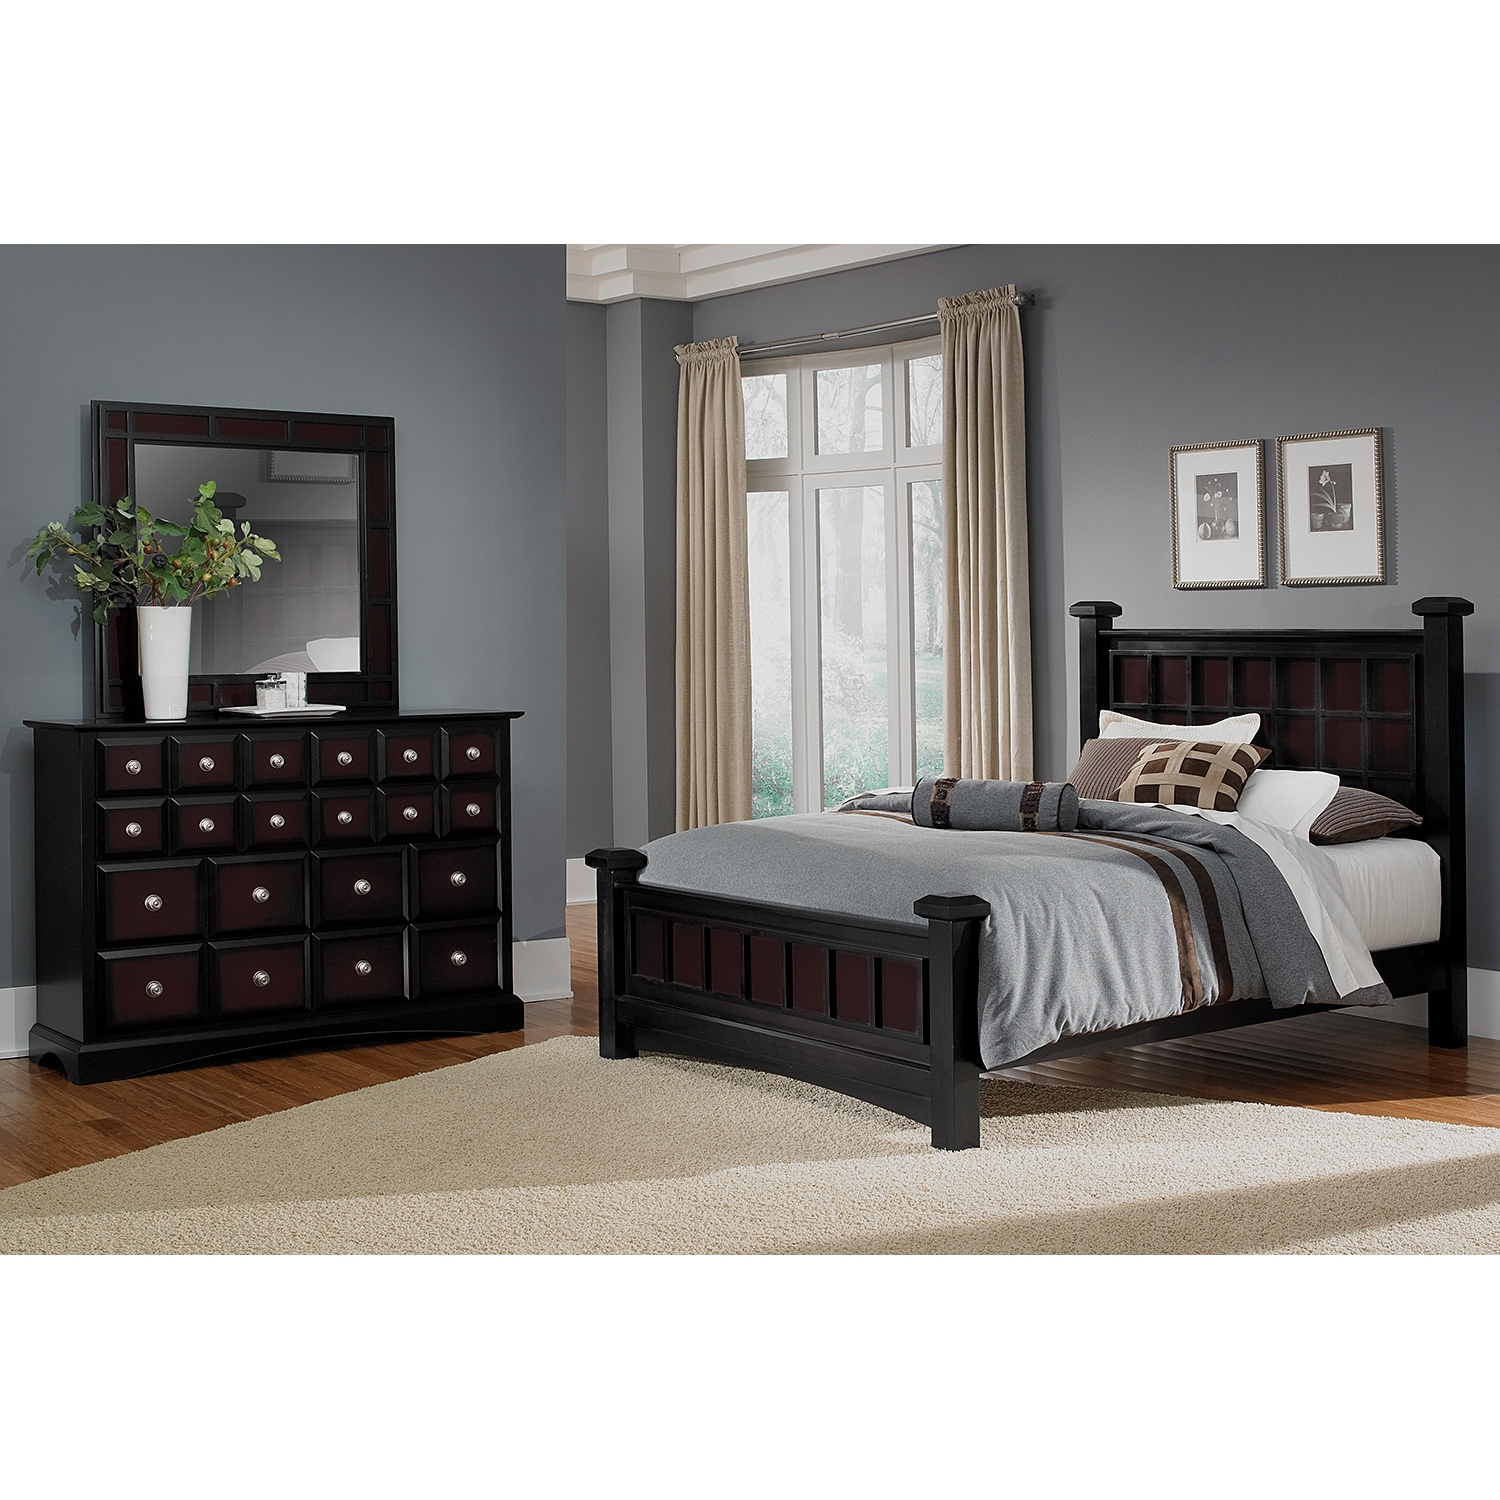 Picture of: Value City Furniture Bedroom Sets Photos And Video Layjao